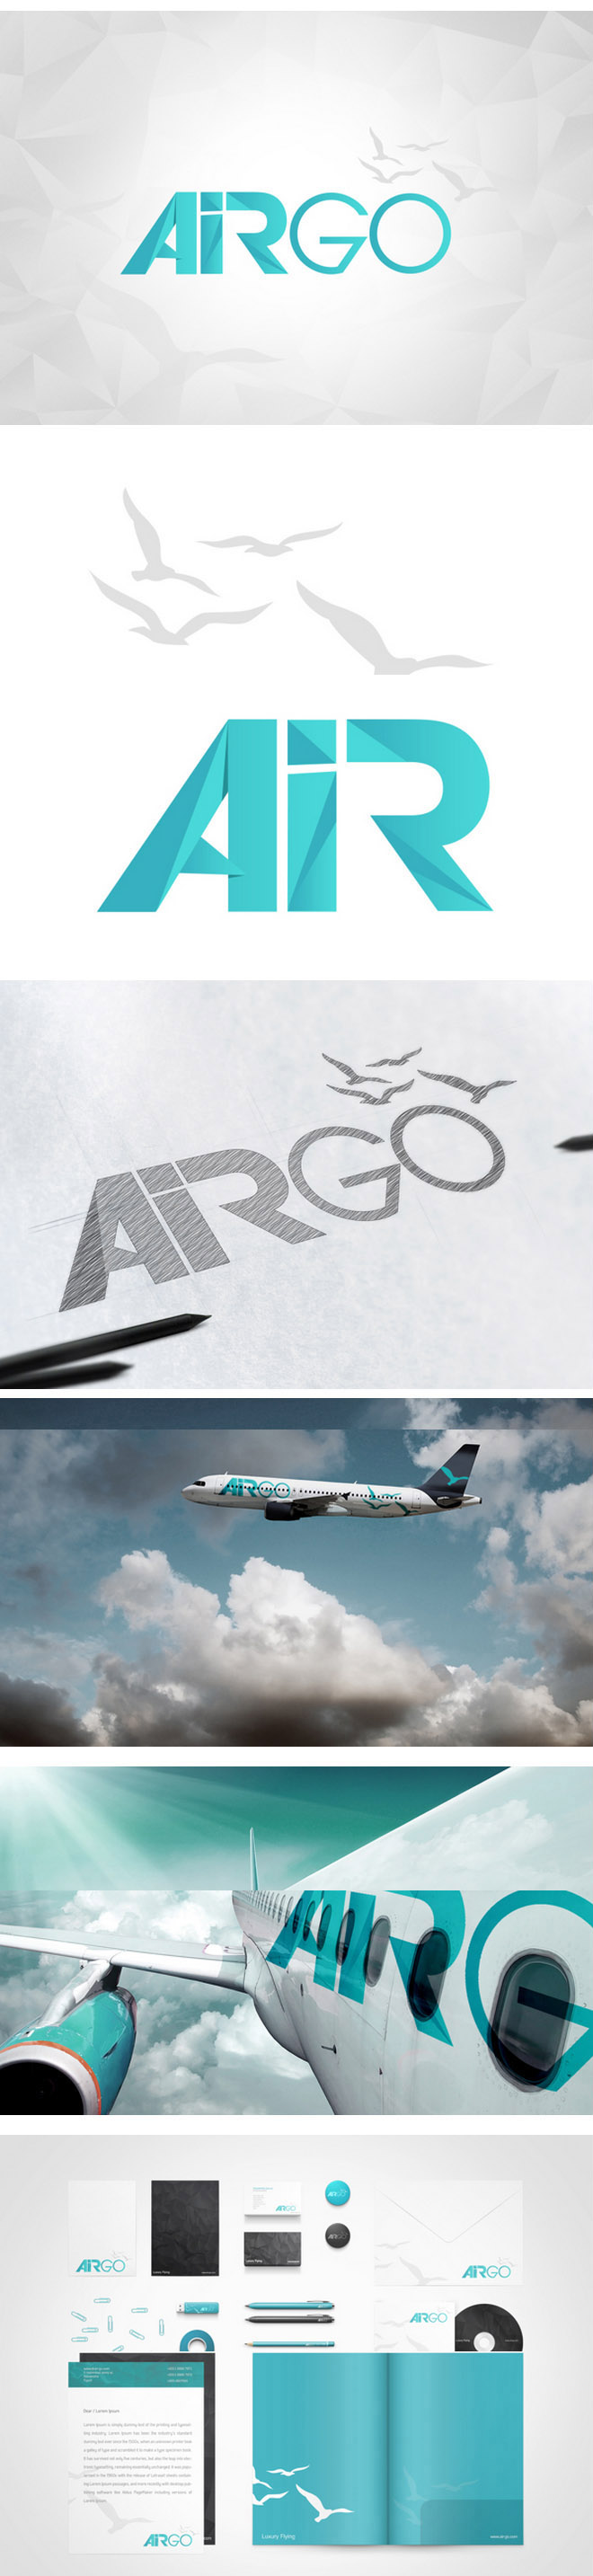 24-aviation-best-branding-design